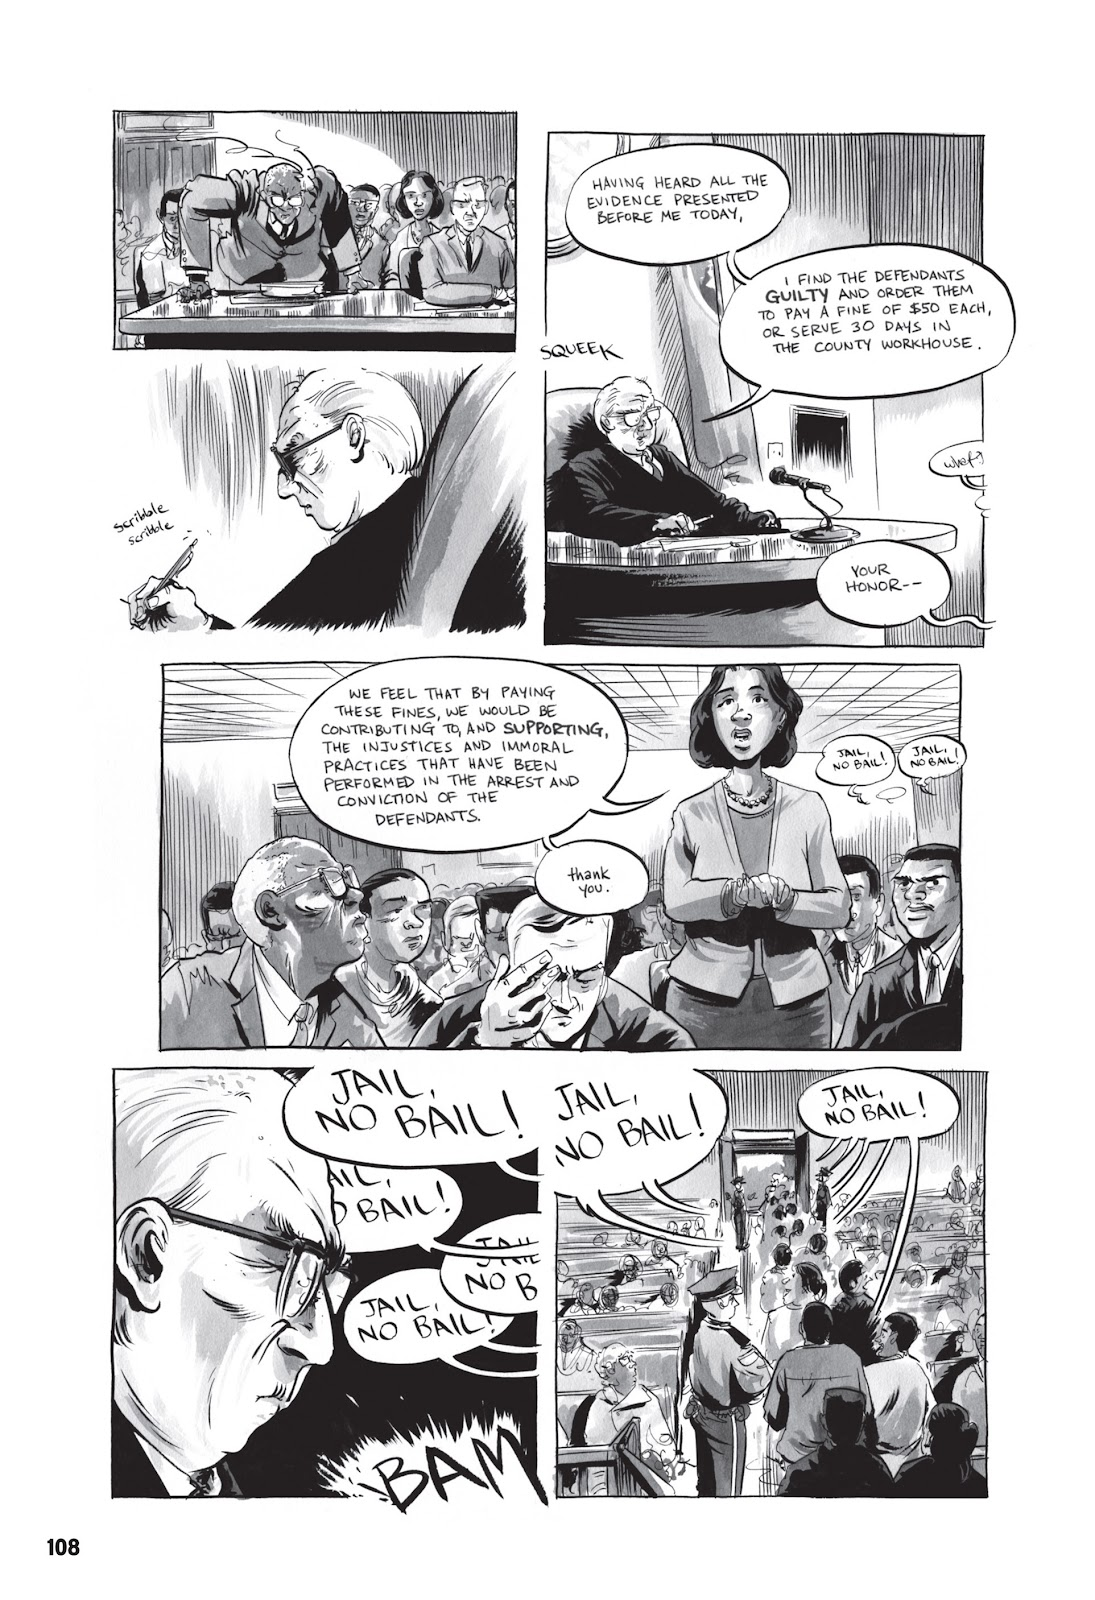 March 1 Page 105